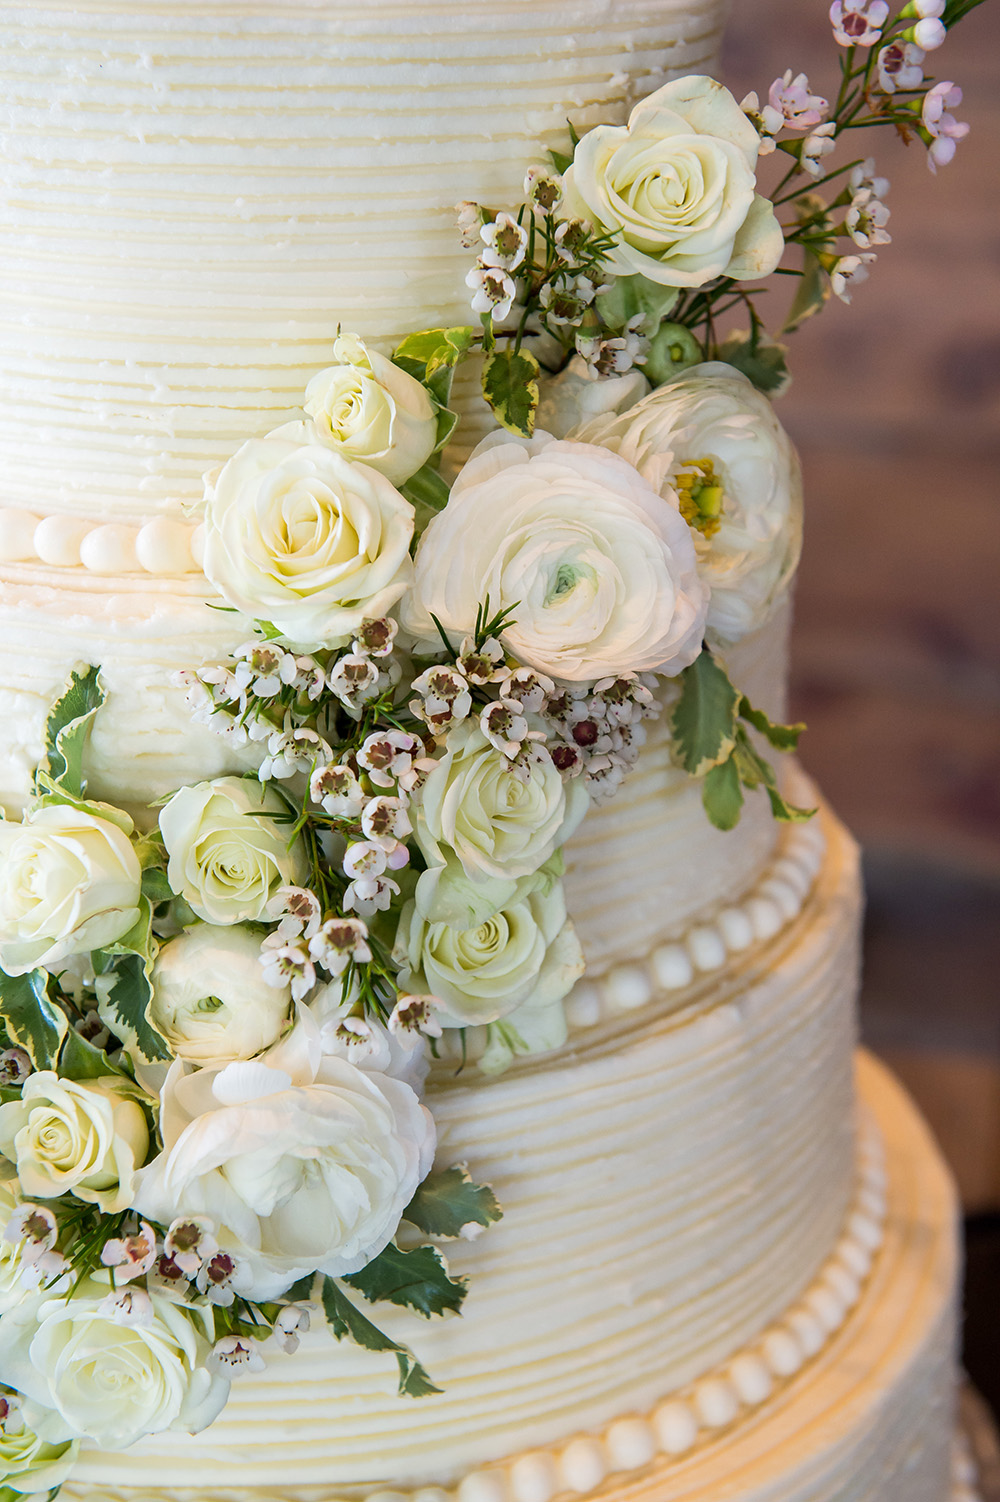 Blue, Cream, Rose, Gold, Hill Country, Wedding, Old Glory Ranch, wedding venue, wedding cake